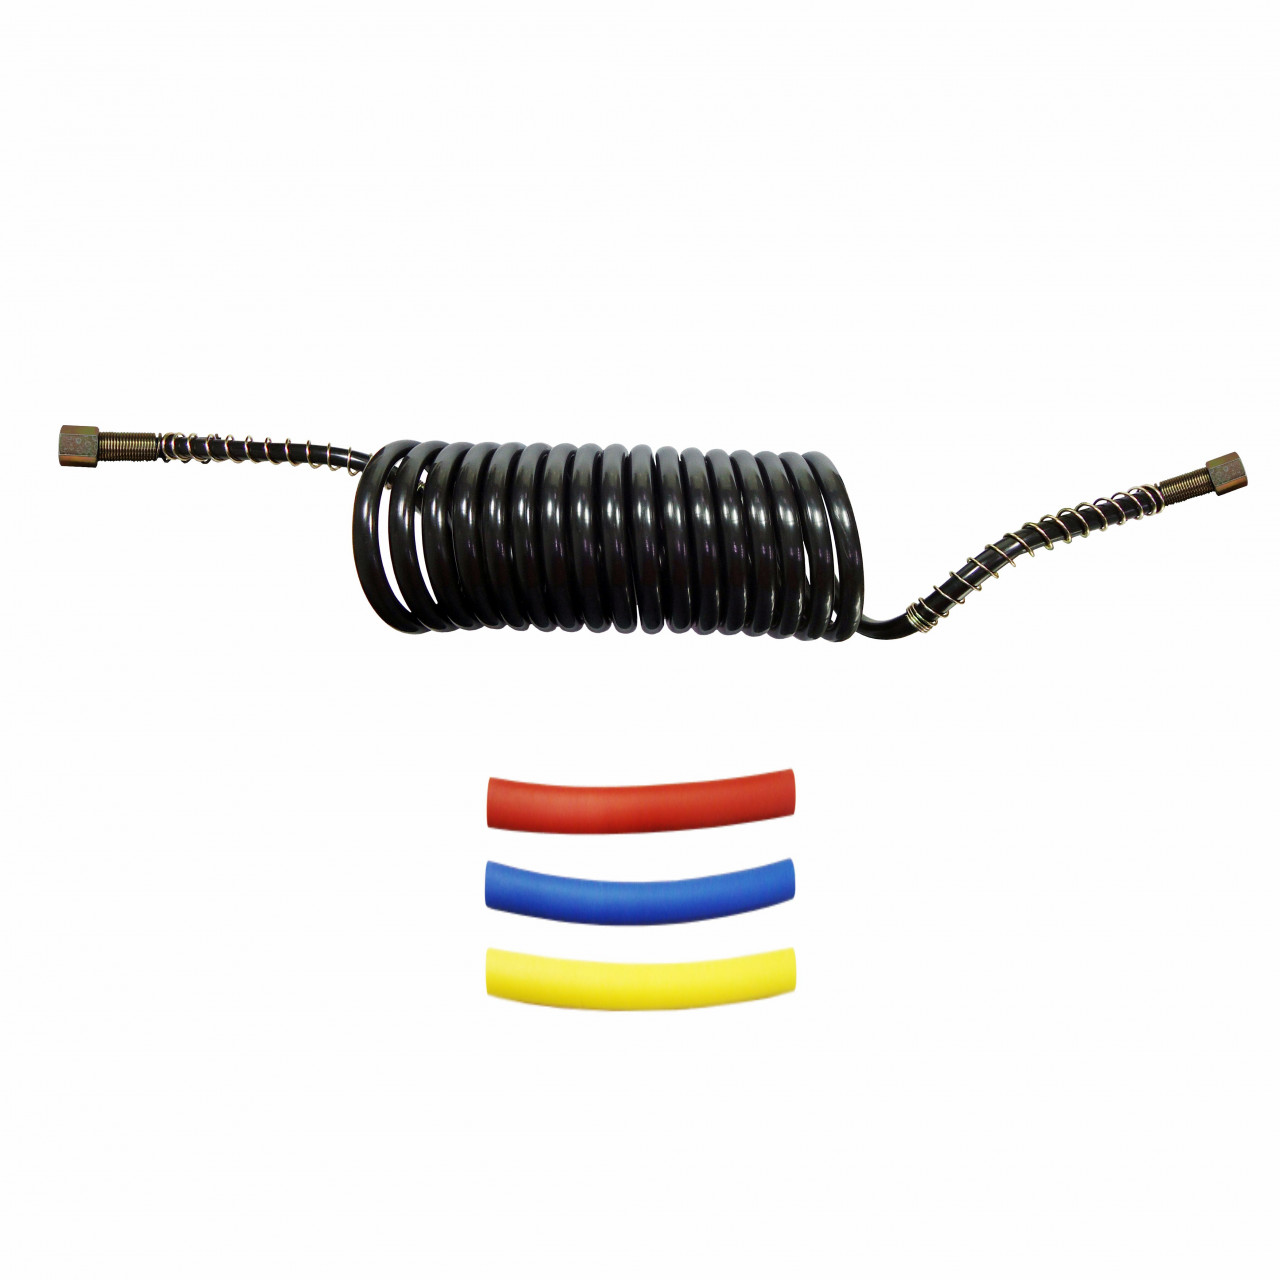 DNI8437 – Spiral Hose for Air Brake 4.5m Female x Female M16 with Heat Shrink Kit Colors